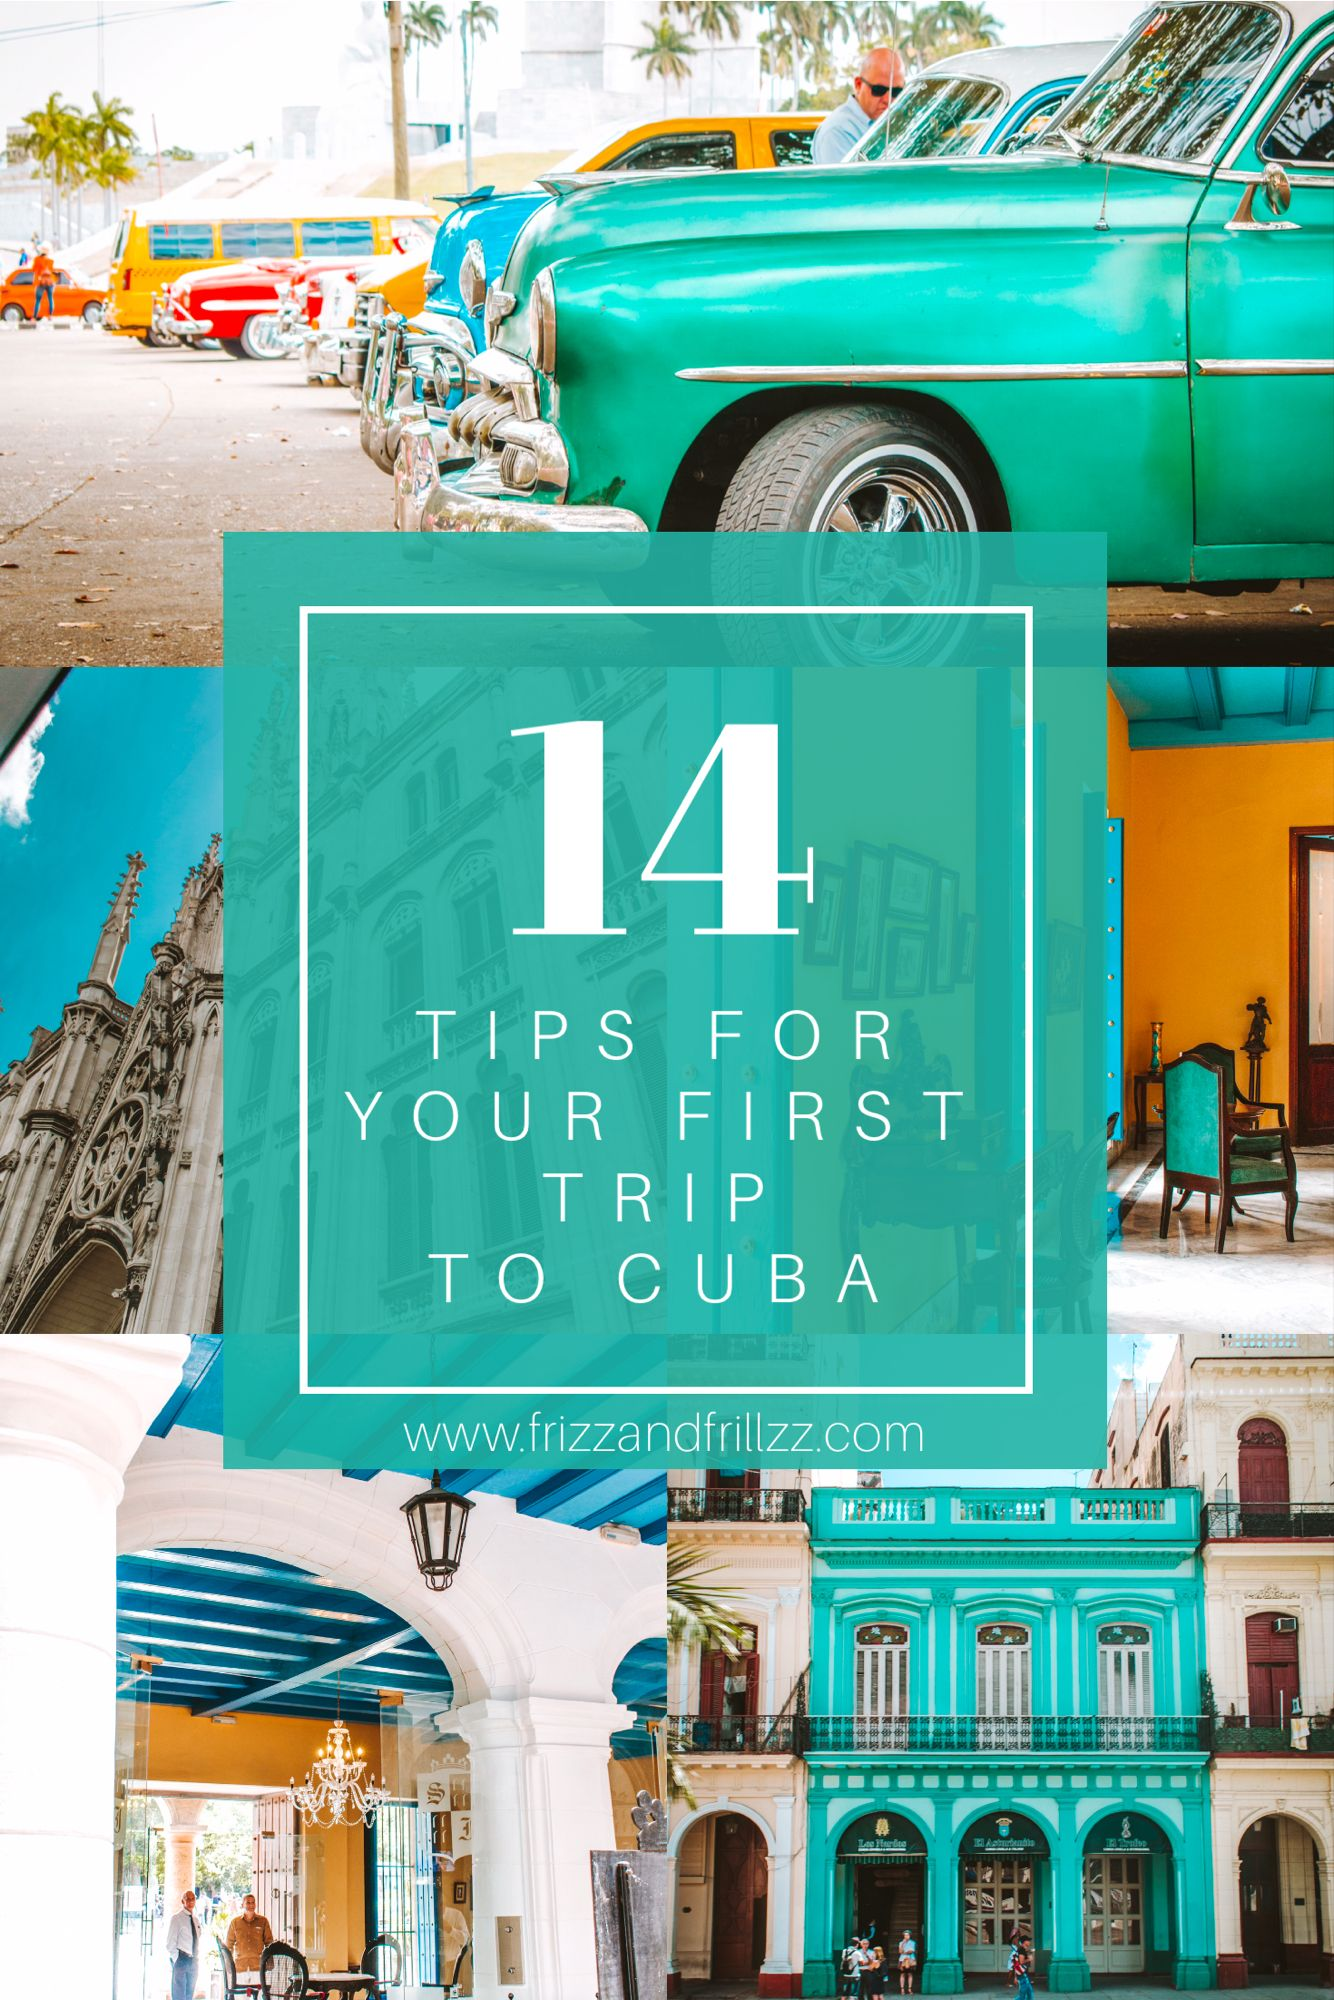 Travel Tips for Cuba, Havana, Havana Cuba Travel, Cuban Cigars, Cuba Resstaurants, Havana travel guide, Cuba Travel Guide, How To Travel in Cuba, Vacation in Cuba, Vacation Guide for Cuba, What Not to do in Cuba, Cruises in Cuba, Royal Caribbean, Cuba Tours #cuba #havana #havanacuba #travelcuba #travelhavana #travelguides #cubavacation #traveltips #cubanrestaurants #thingstodoincuba #firsttimersguidetocuba